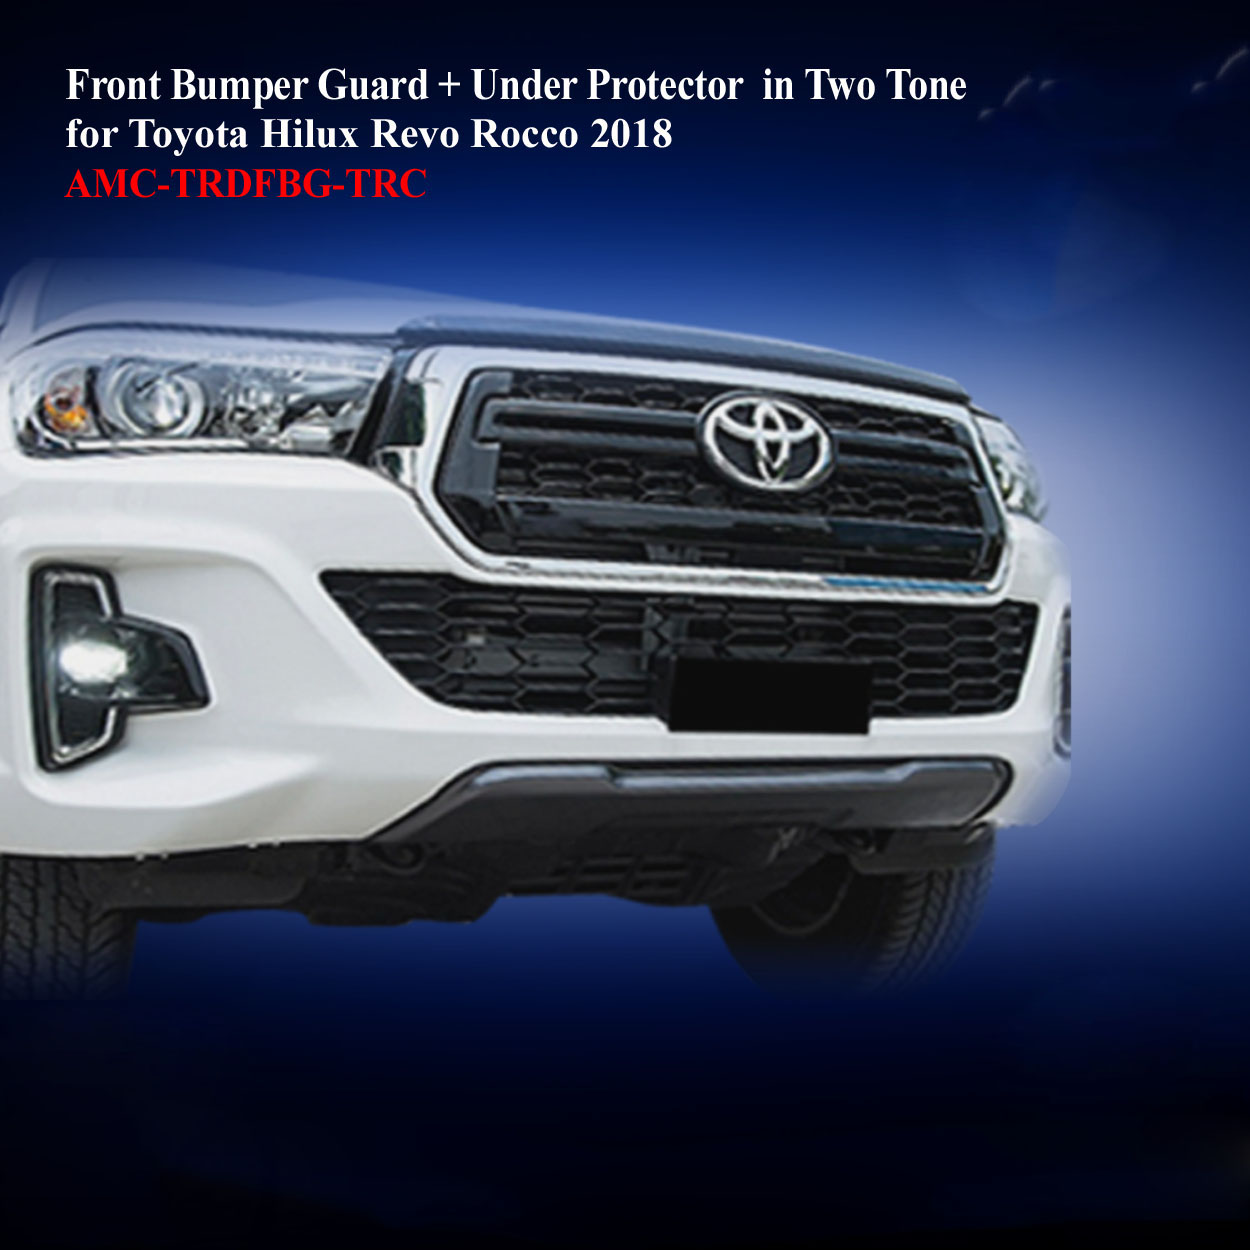 Front Bumper Guard + Under Protector in Two Tone